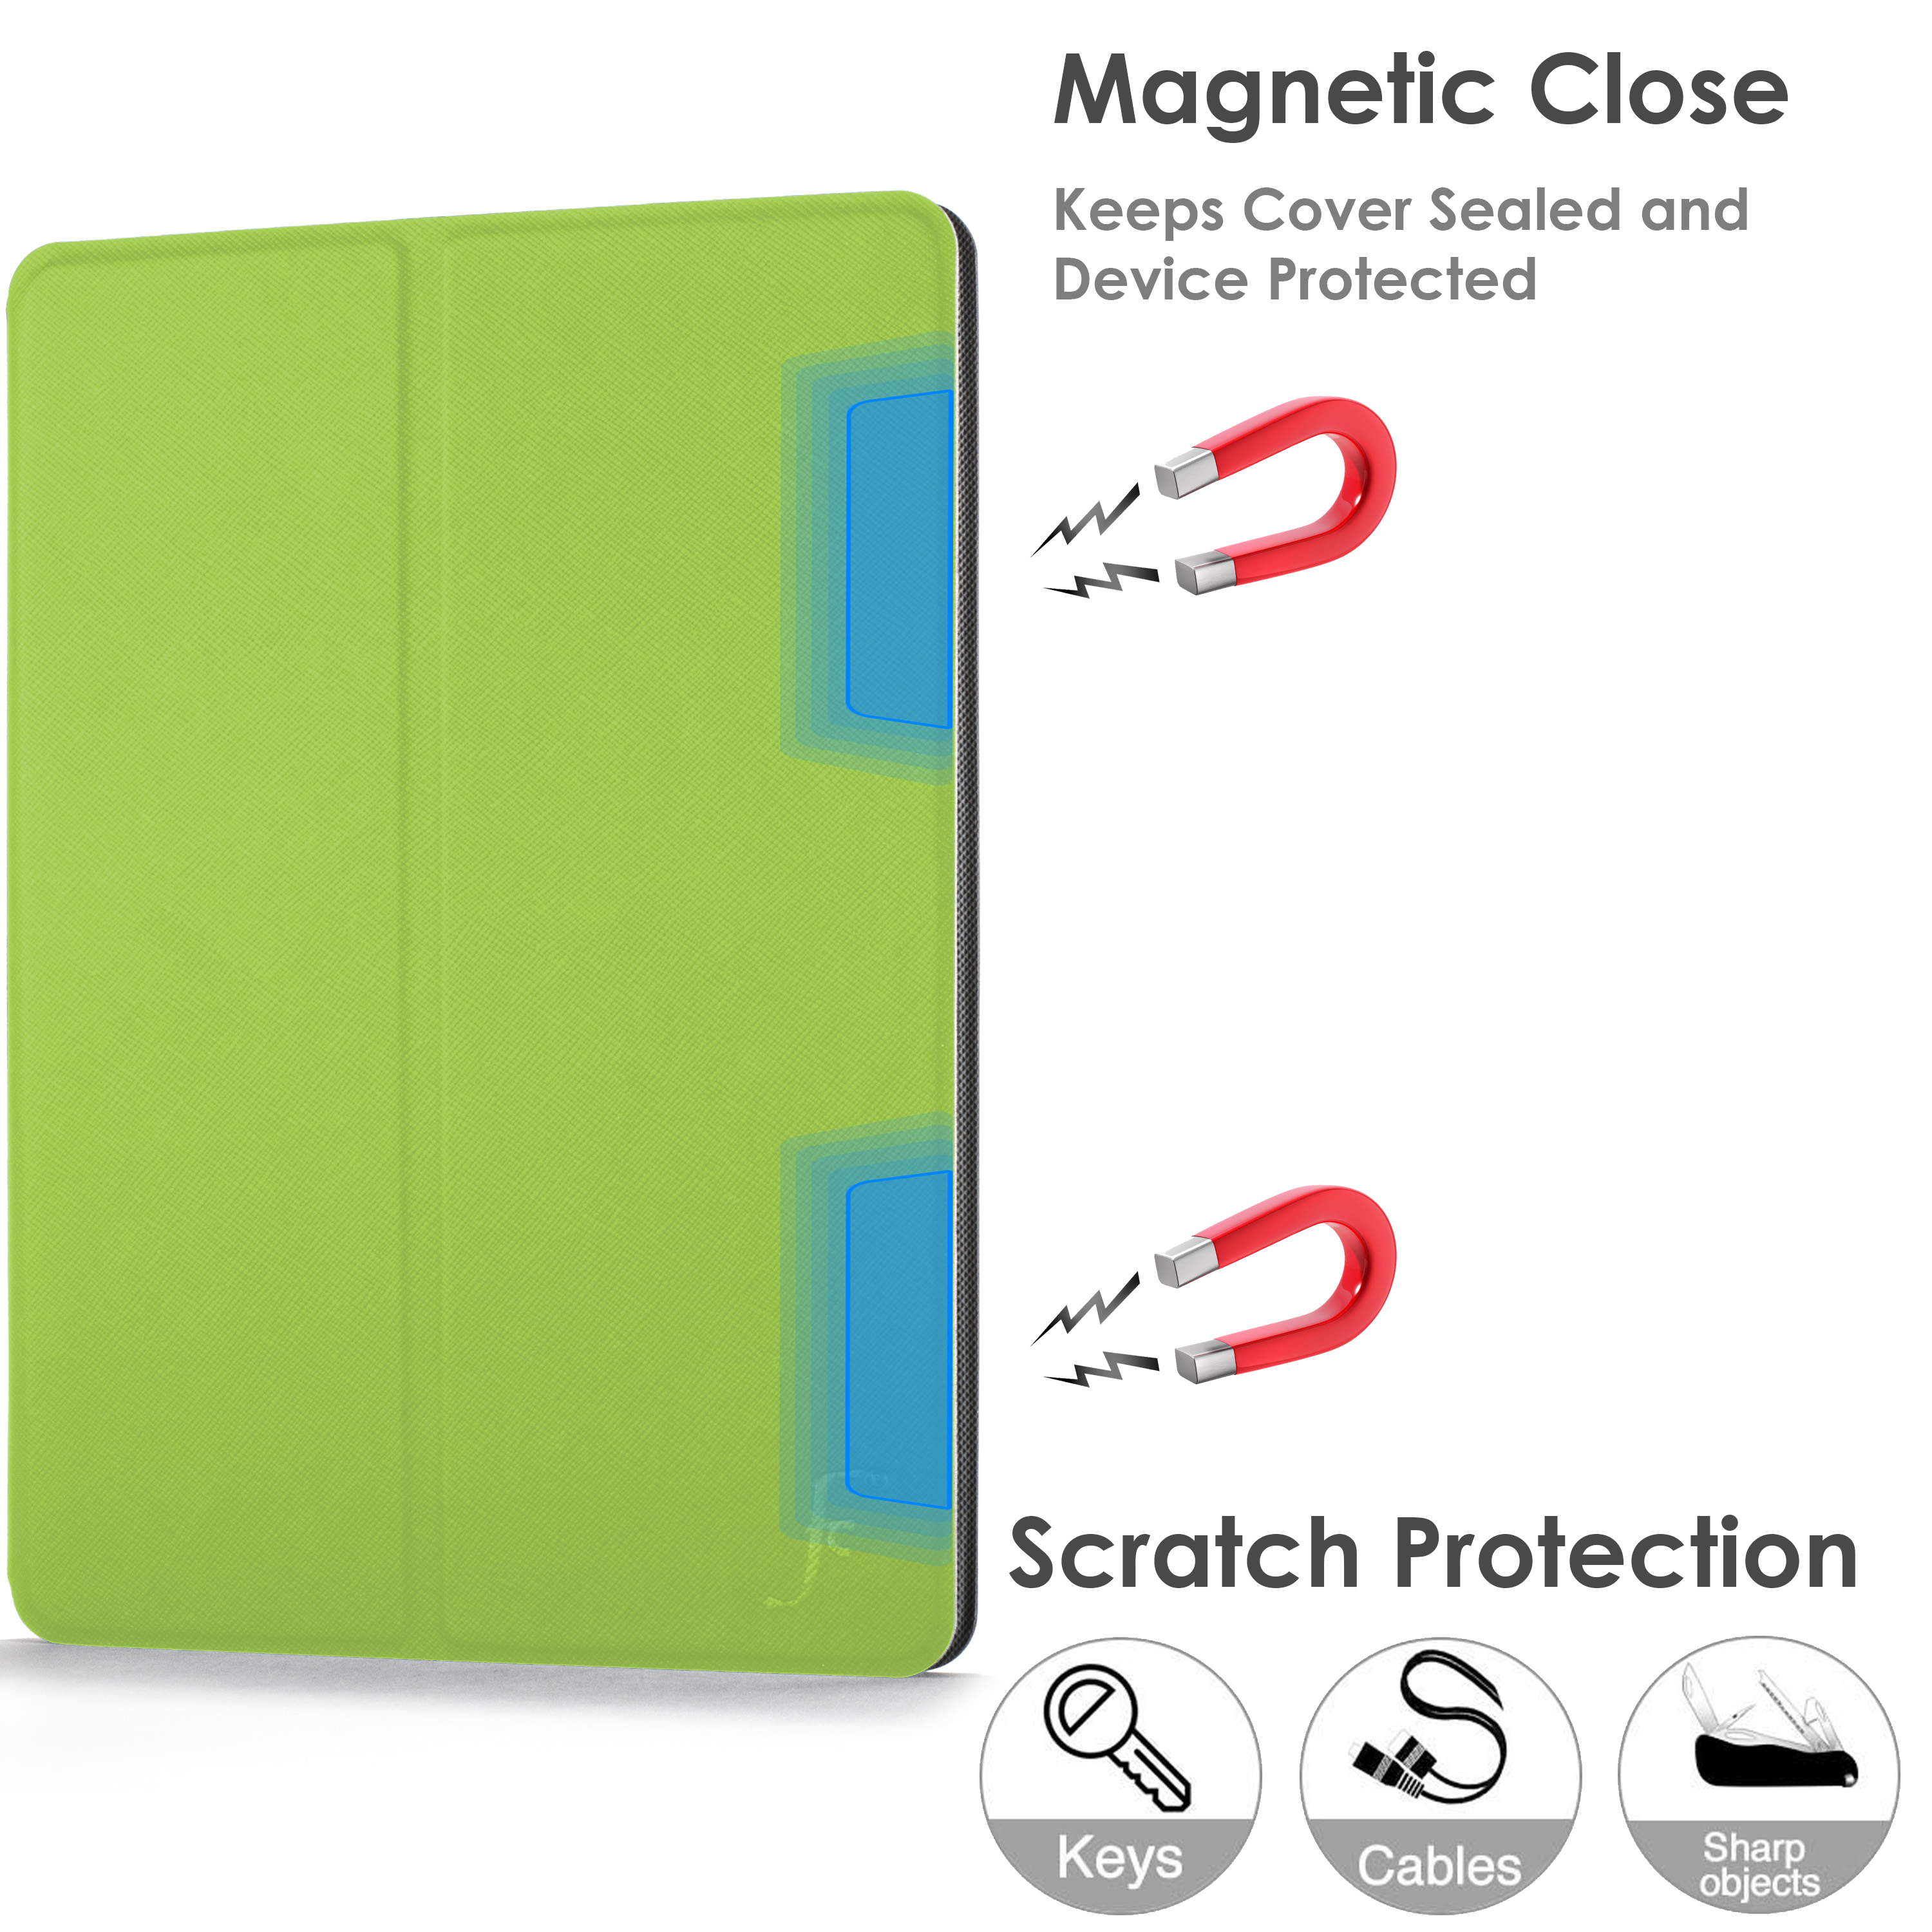 miniature 31 - Samsung Galaxy Tab A 10.1 2019 Étui Magnétique Protection & Support + Stylet